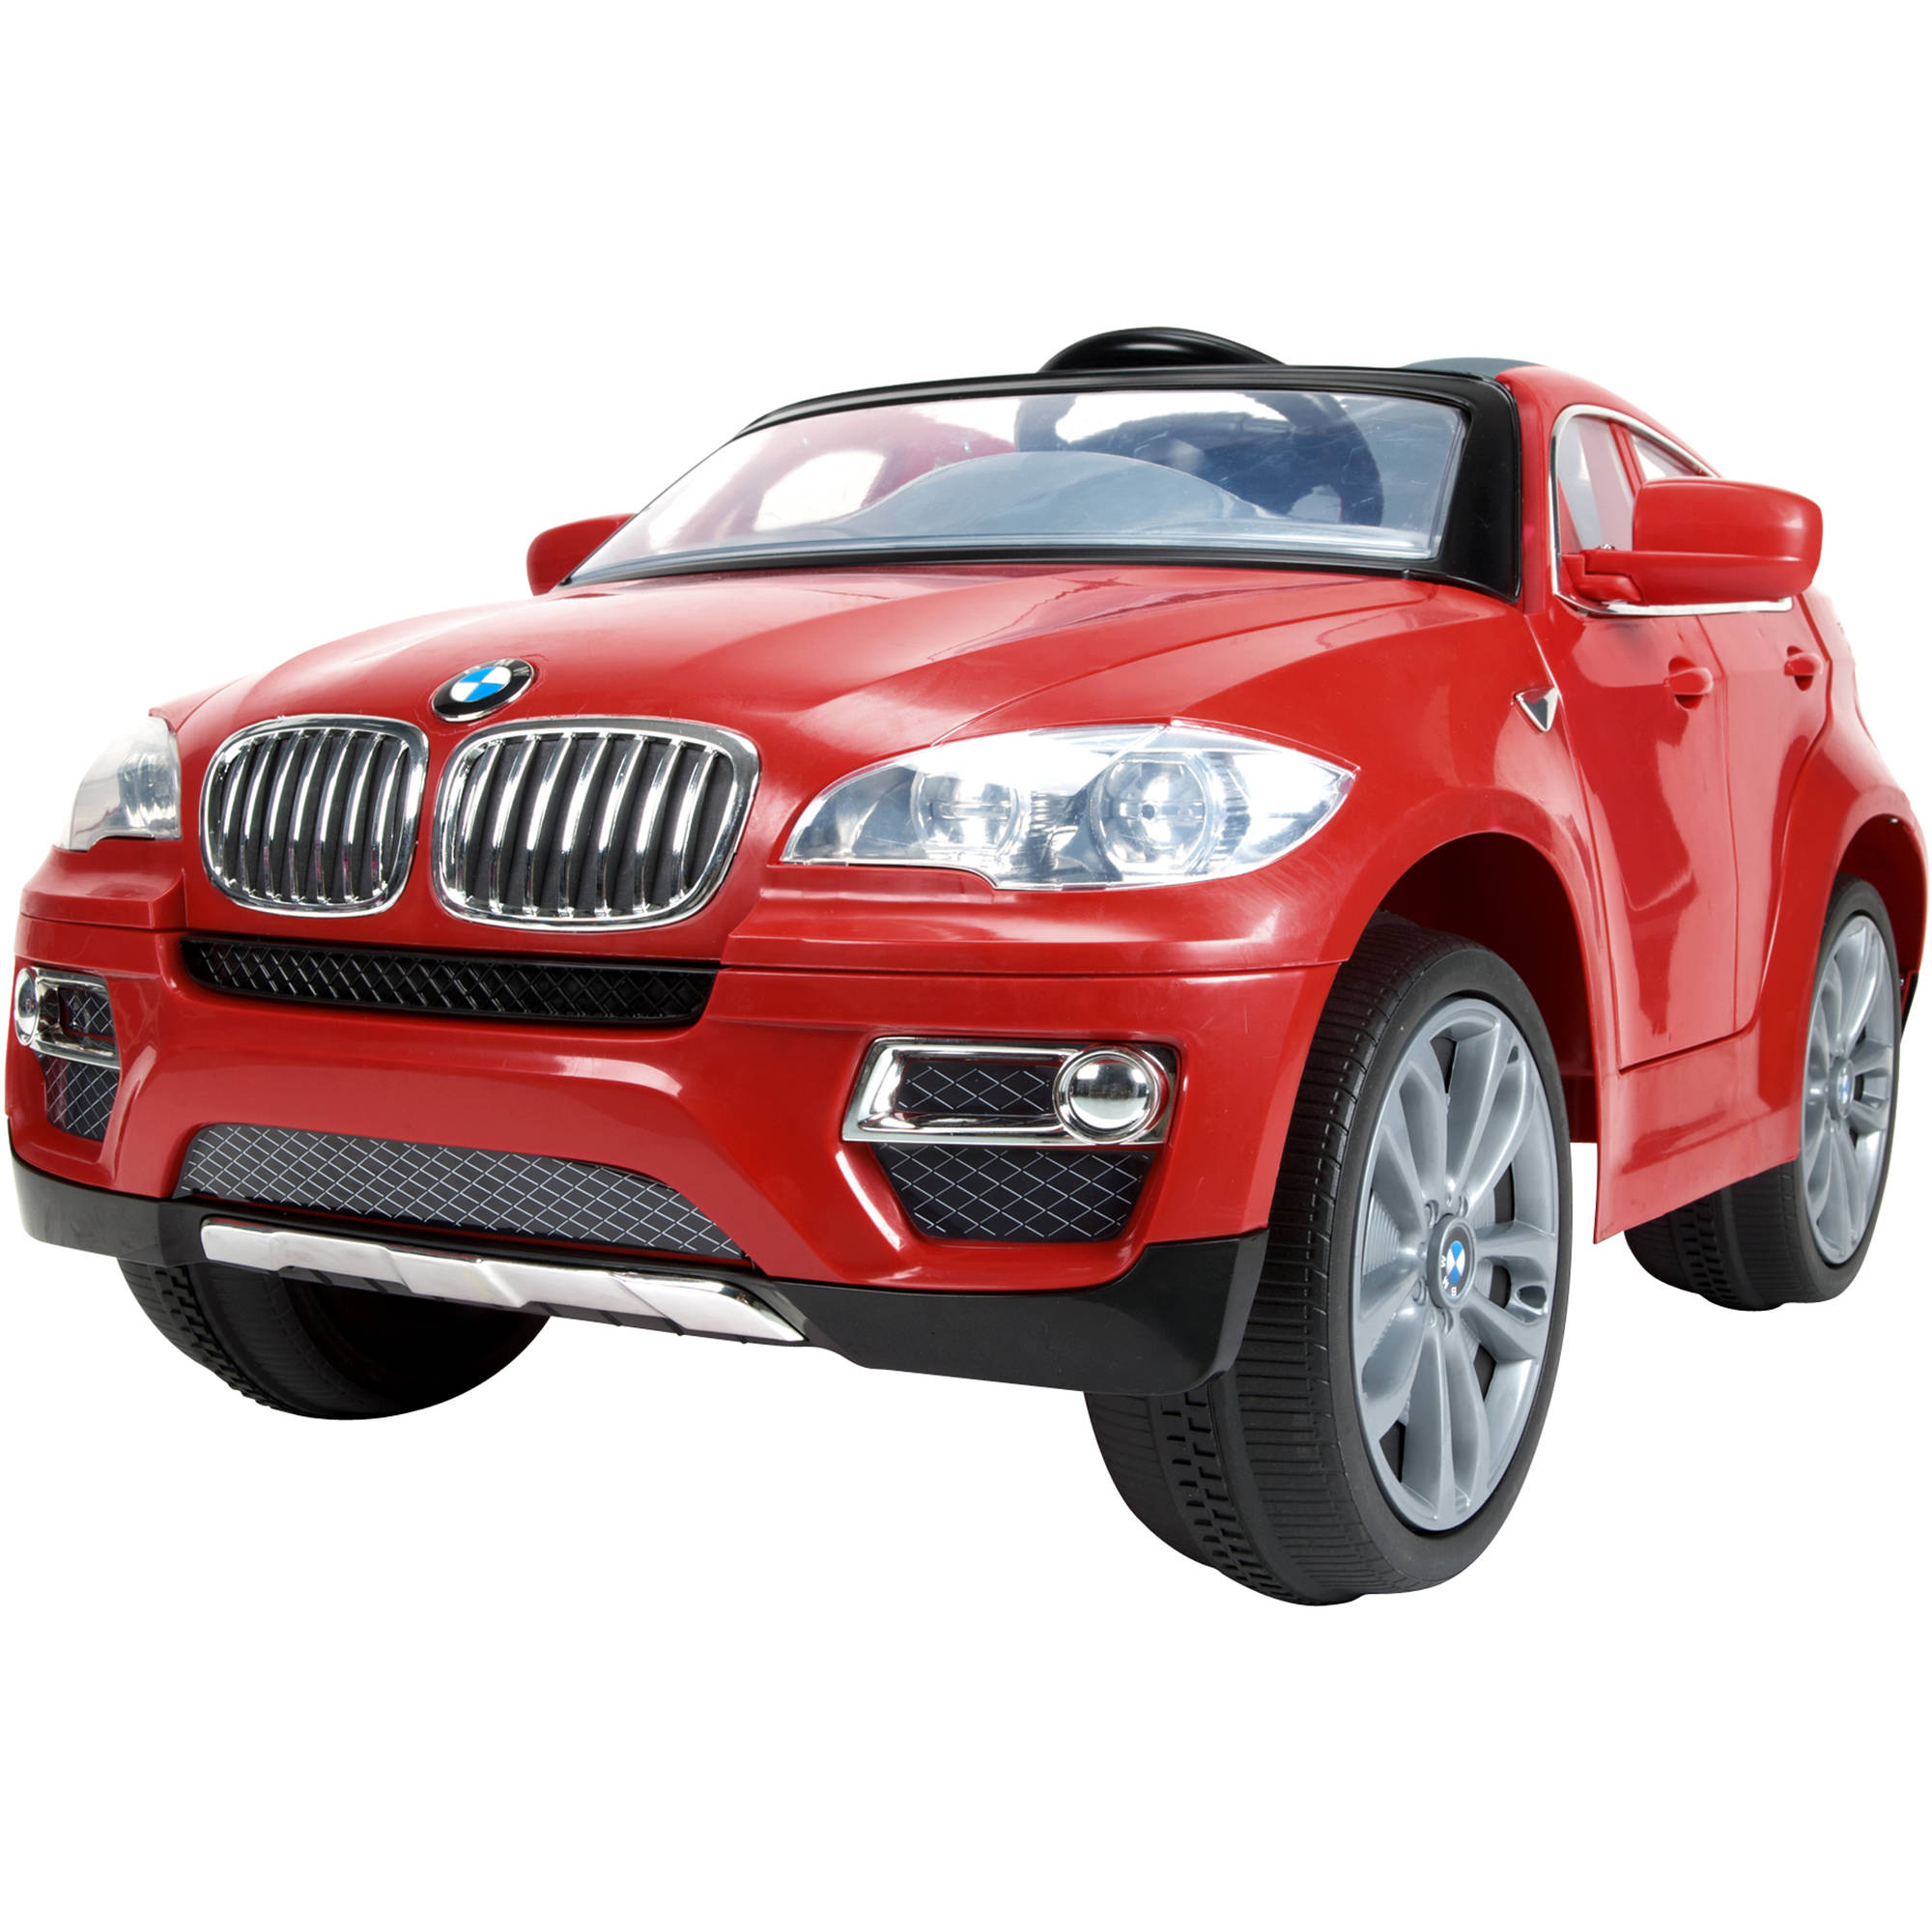 bmw x6 6 volt electric battery powered ride on toy by huffy walmart